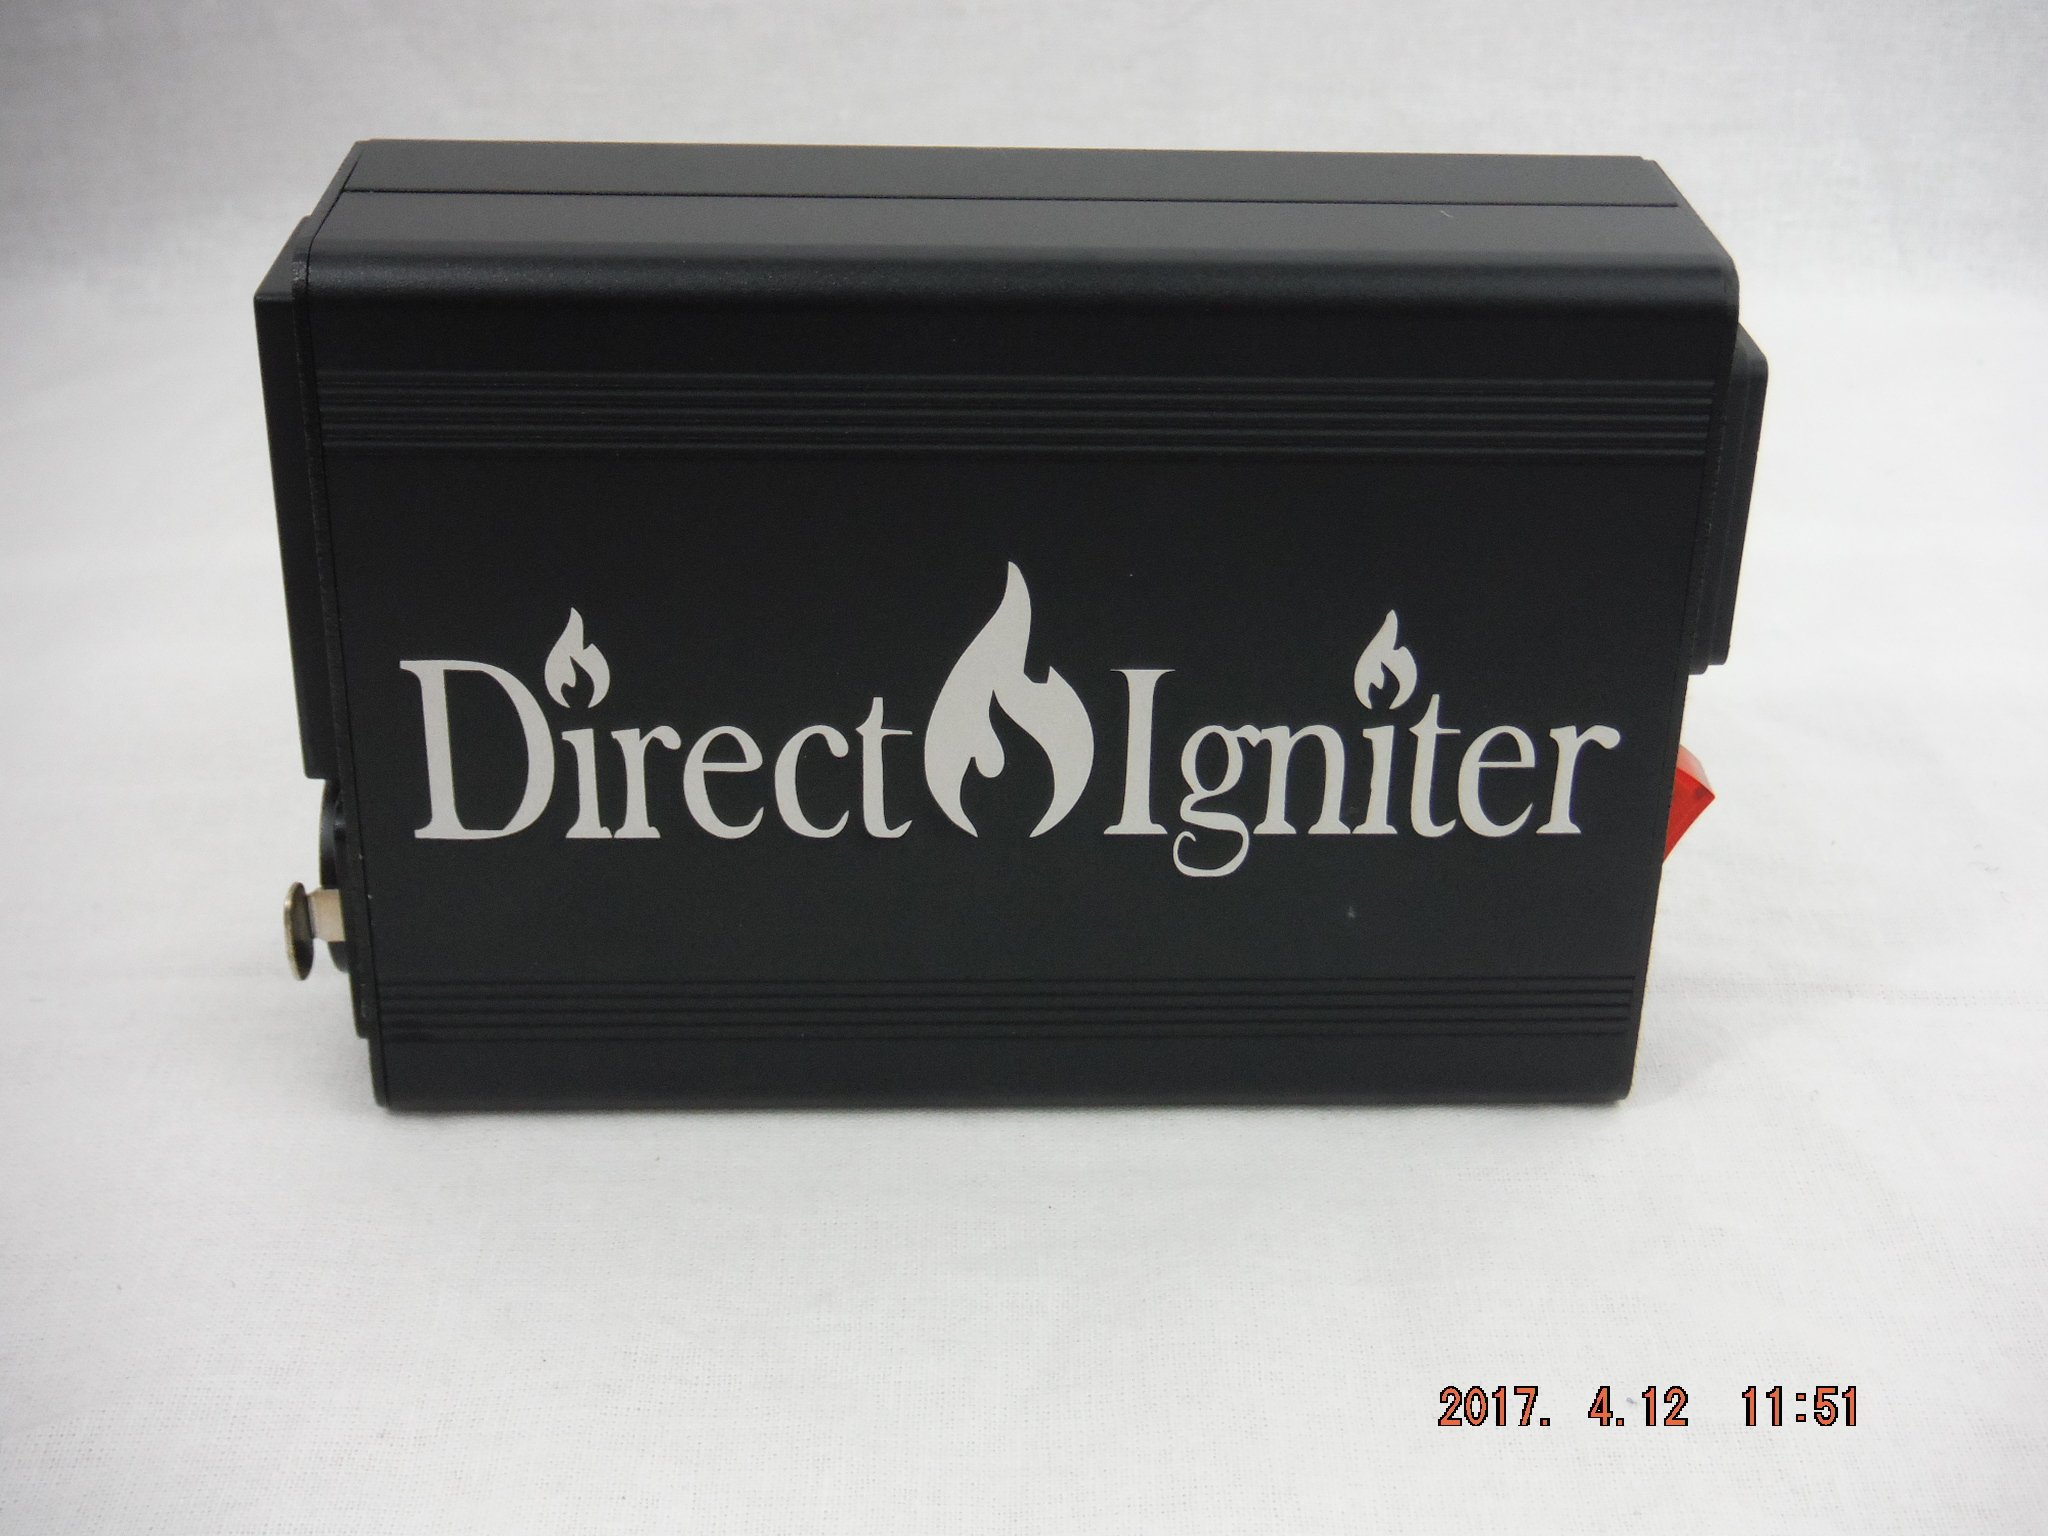 DIRECT IGNITER CLASSIC Aromatherapy Difuser WITH PID TEMPERATURE CONTROL PLUS ACCESSORIES by DIRECT IGNITER (Image #7)